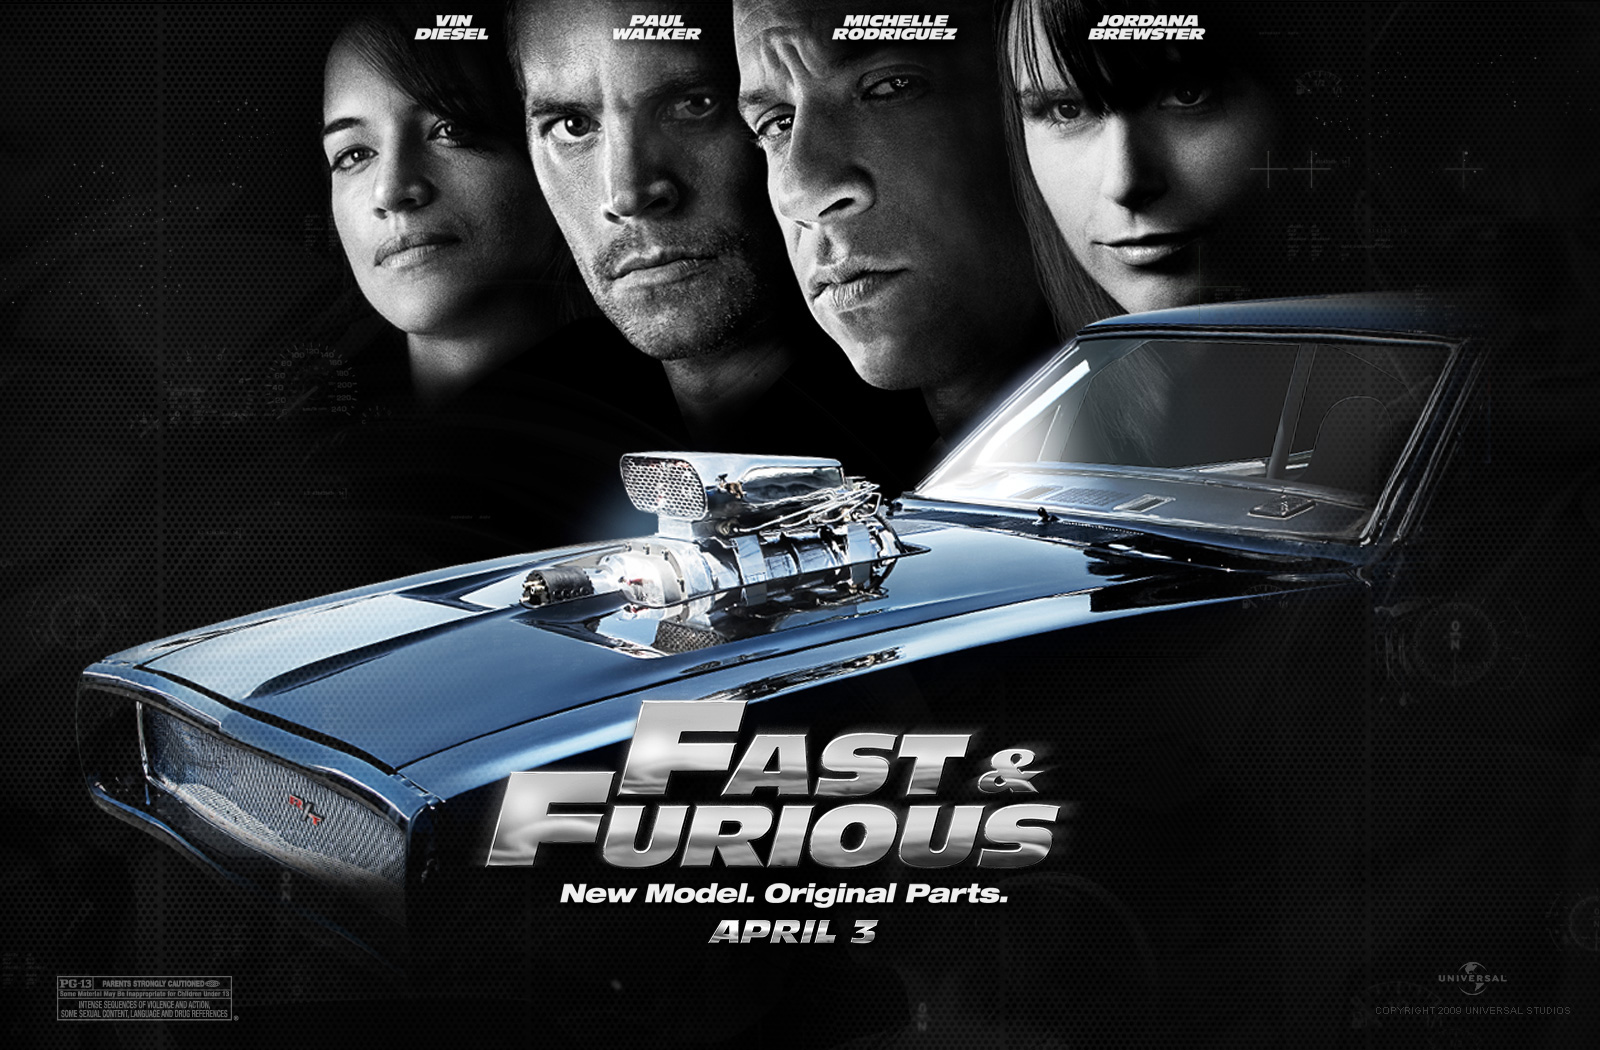 http://1.bp.blogspot.com/-B6TJqBDuUgI/T0OnkqnWRkI/AAAAAAAA5cQ/8U7s7YwhmKU/s1600/Vin_Diesel_in_The_Fast_and_the_Furious_4_Wallpaper_1_800.jpg